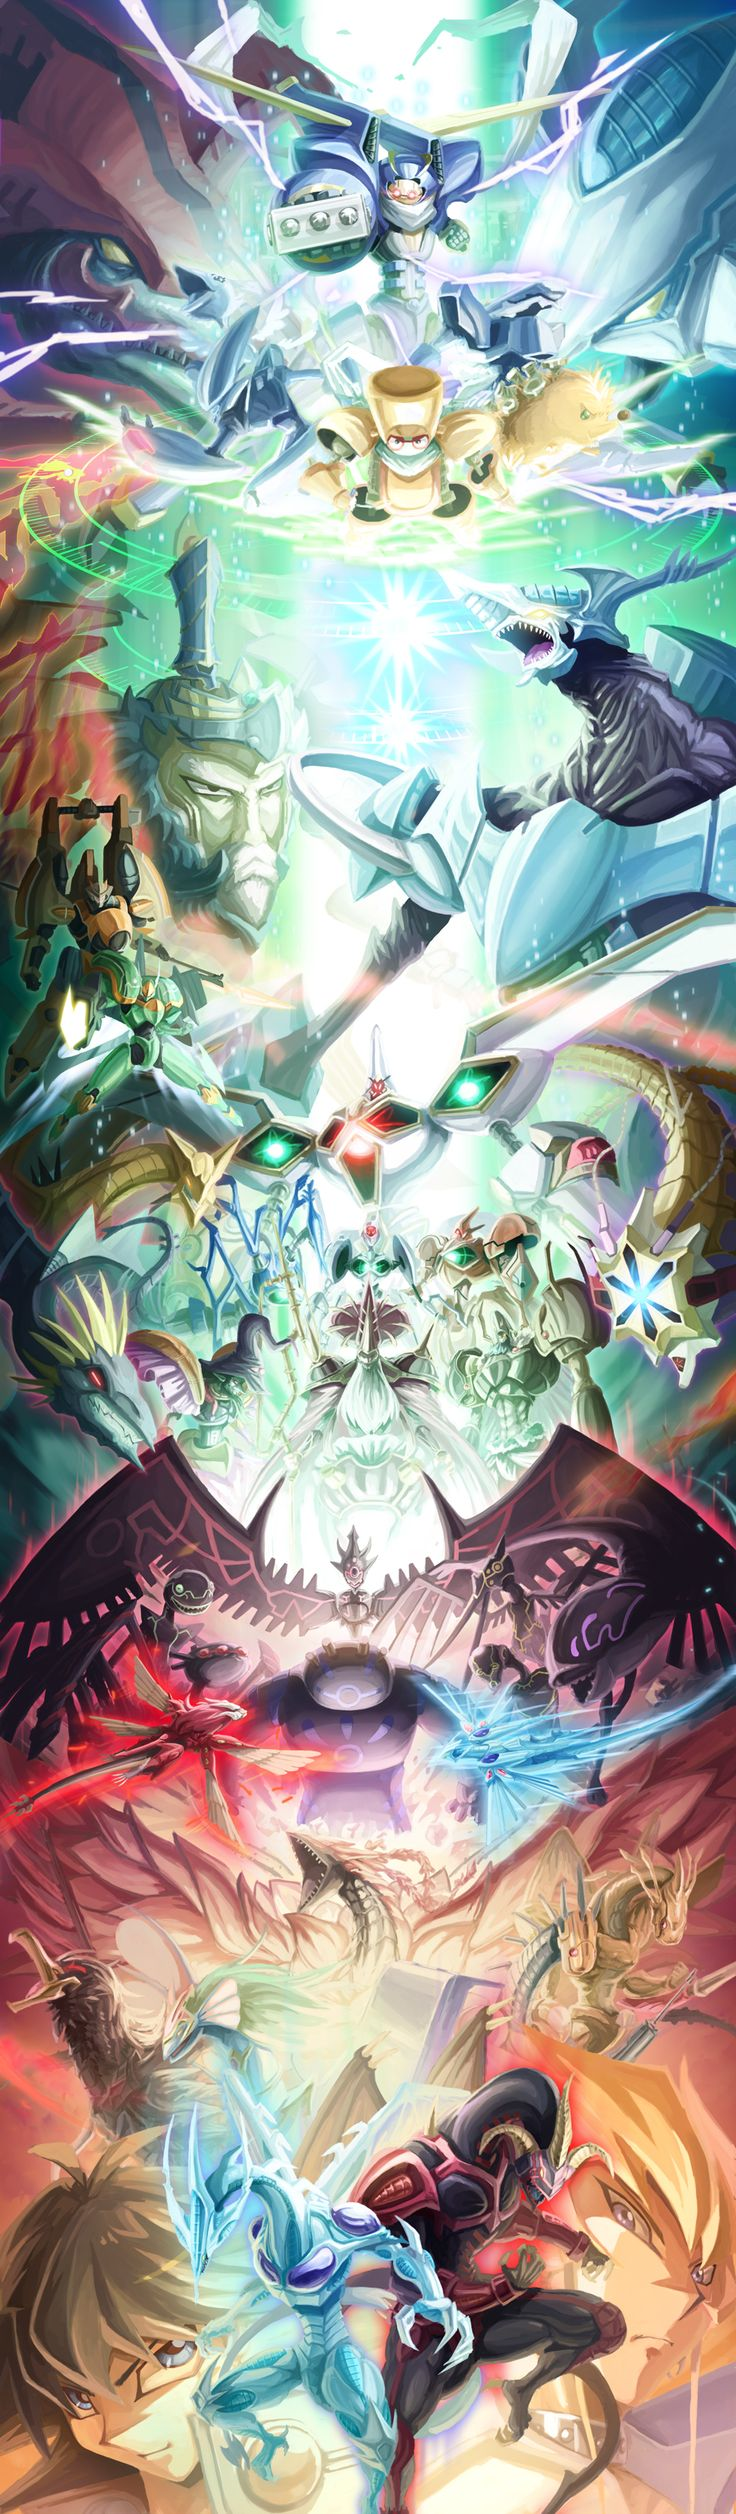 845 best yu gi oh images on pinterest yu gi oh drawing and drawings